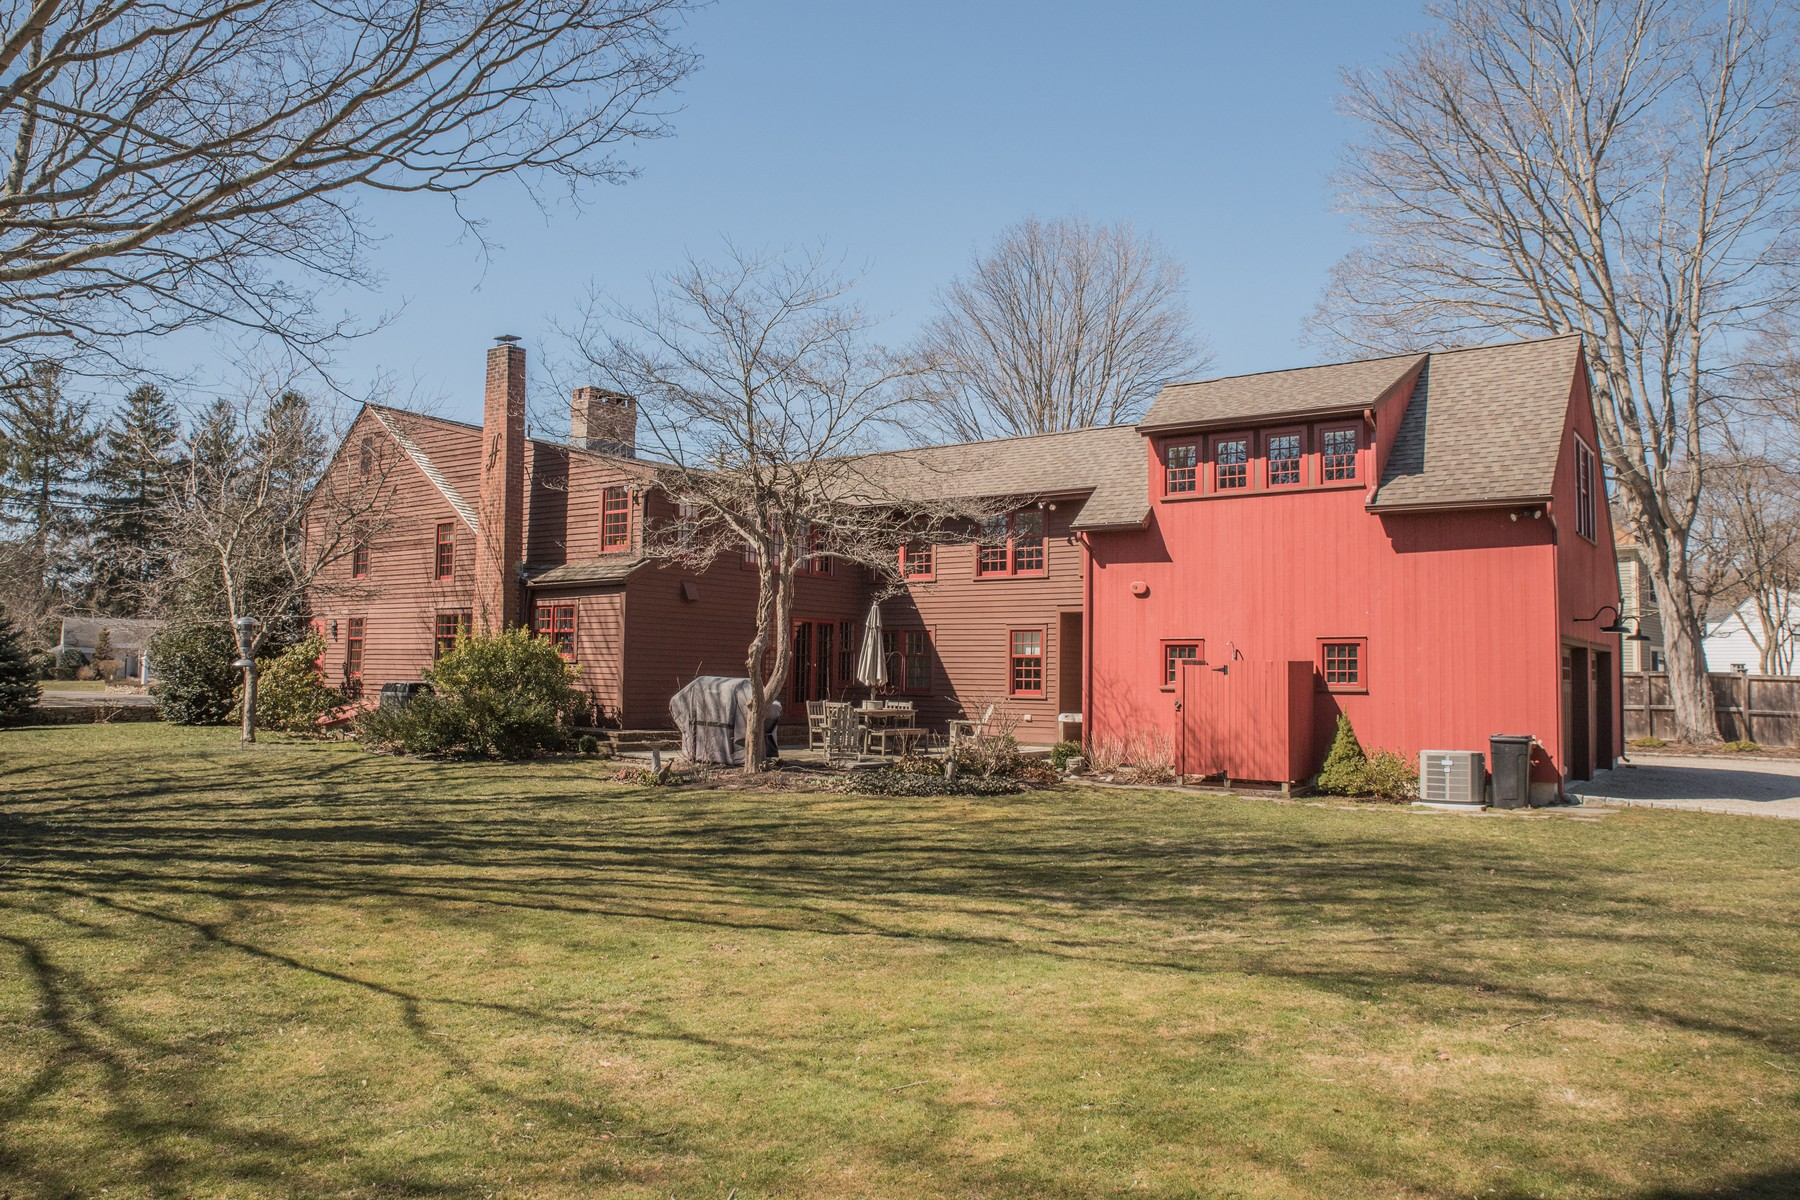 Single Family Home for Sale at The Rev. Thomas Buckingham House c.1671 412 Main St Old Saybrook, Connecticut, 06475 United States